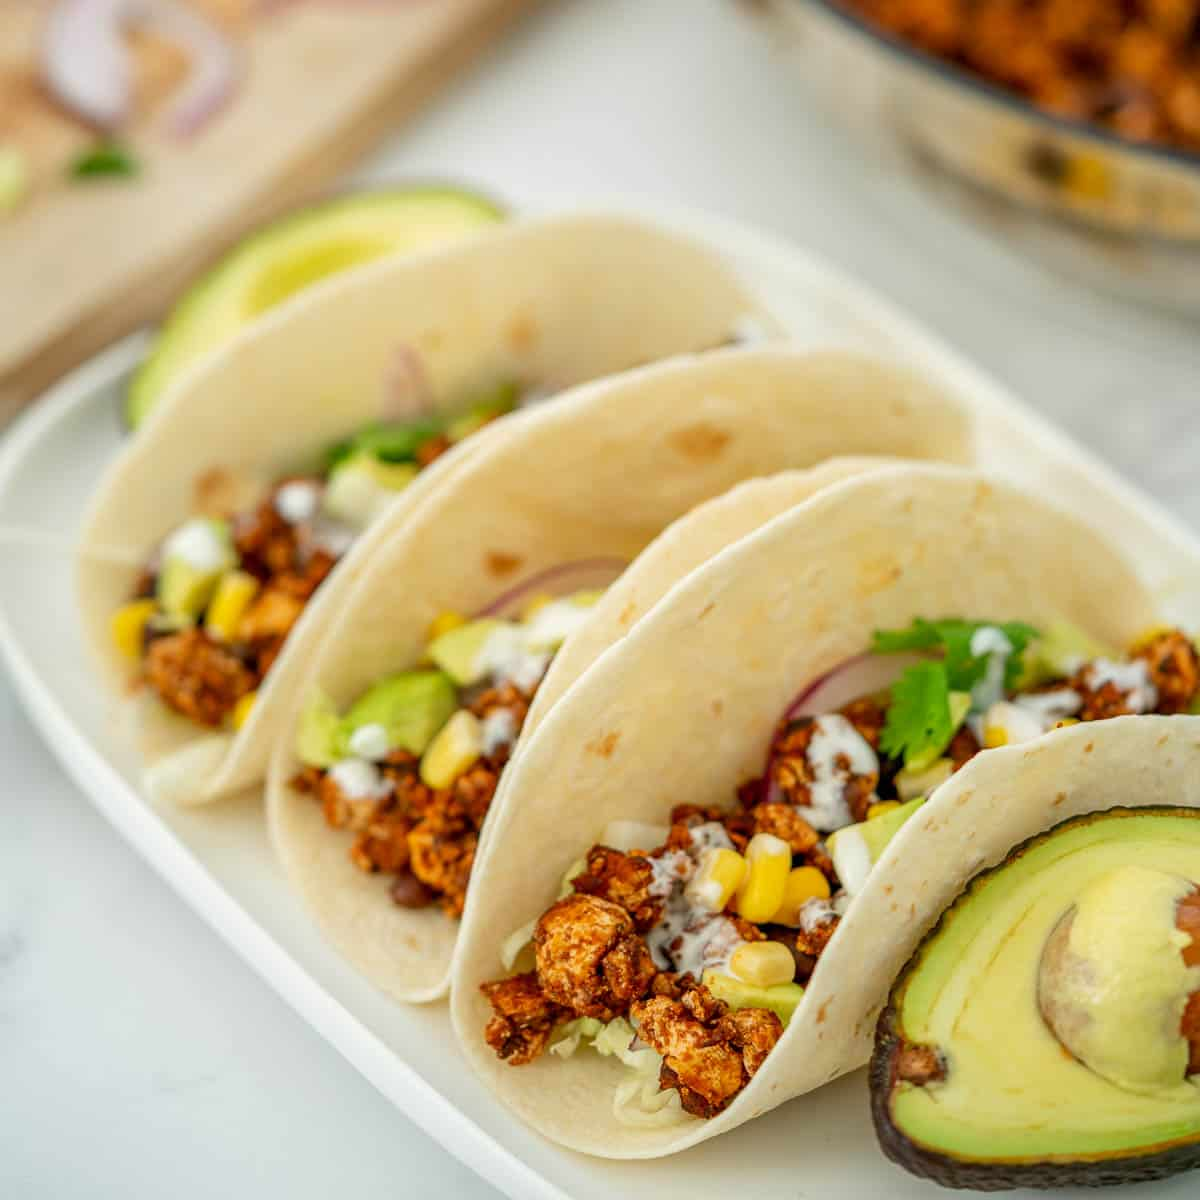 3 soft tacos filled with Mexican tofu crumbles on a white platter.